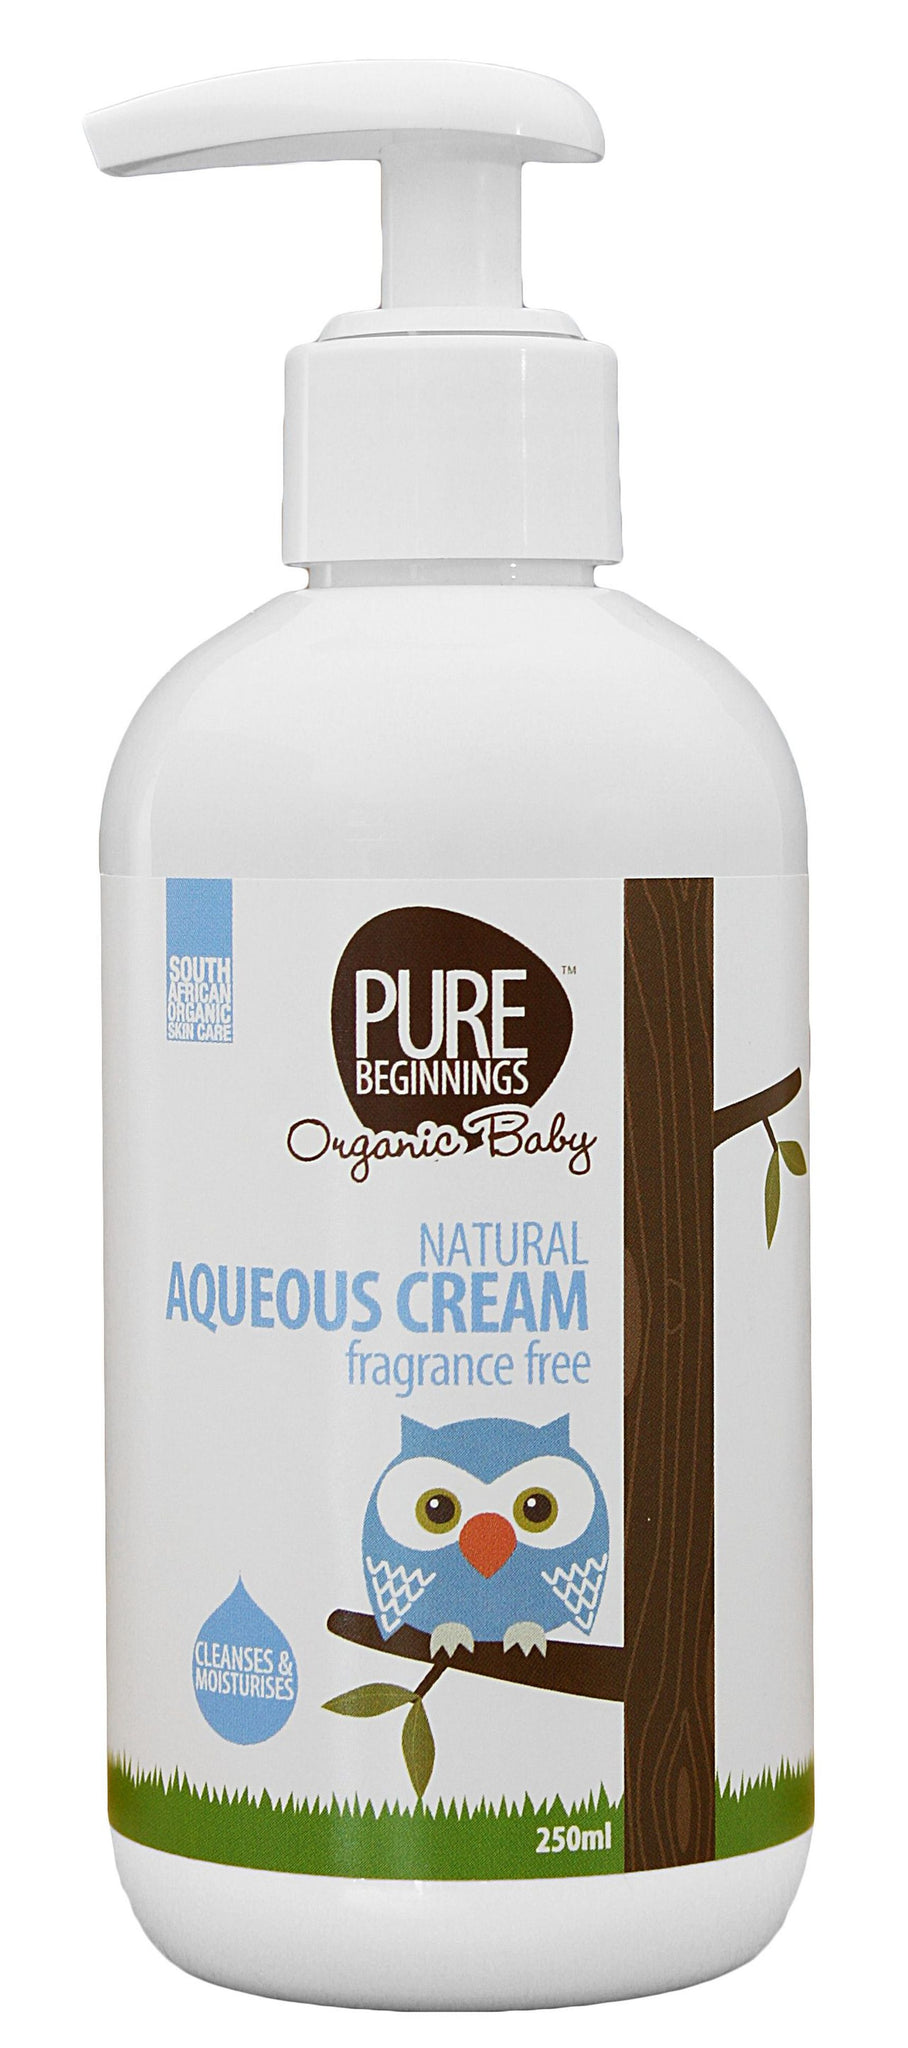 Natural Aqueous Cream